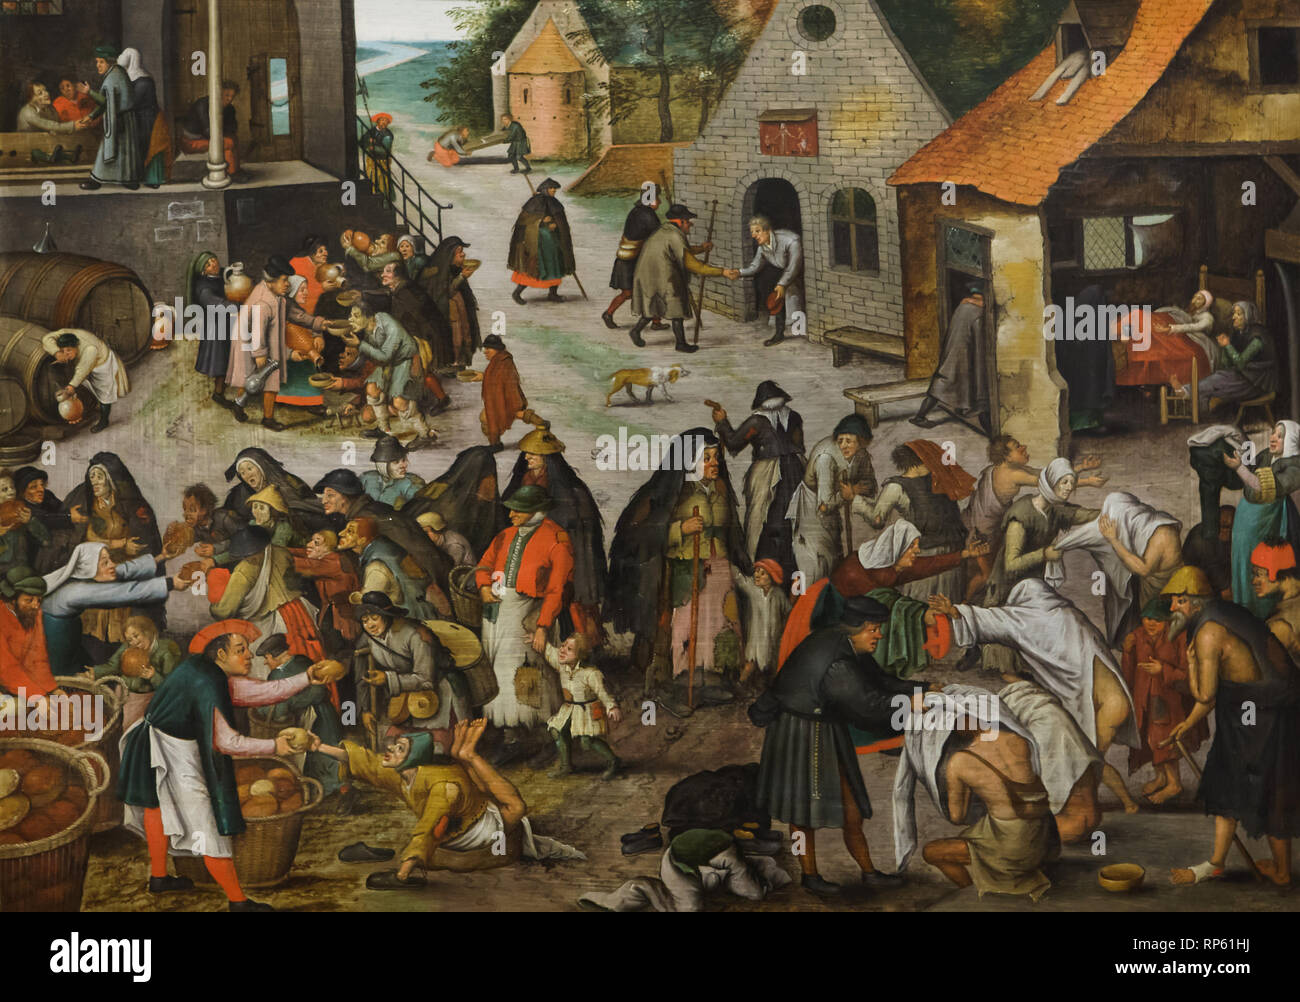 Painting 'Seven Acts of Mercy' by Dutch Renaissance painter Pieter Bruegel the Younger (1600-1605) on display in the National Museum of Ancient Art (Museu Nacional de Arte Antiga) in Lisbon, Portugal. - Stock Image